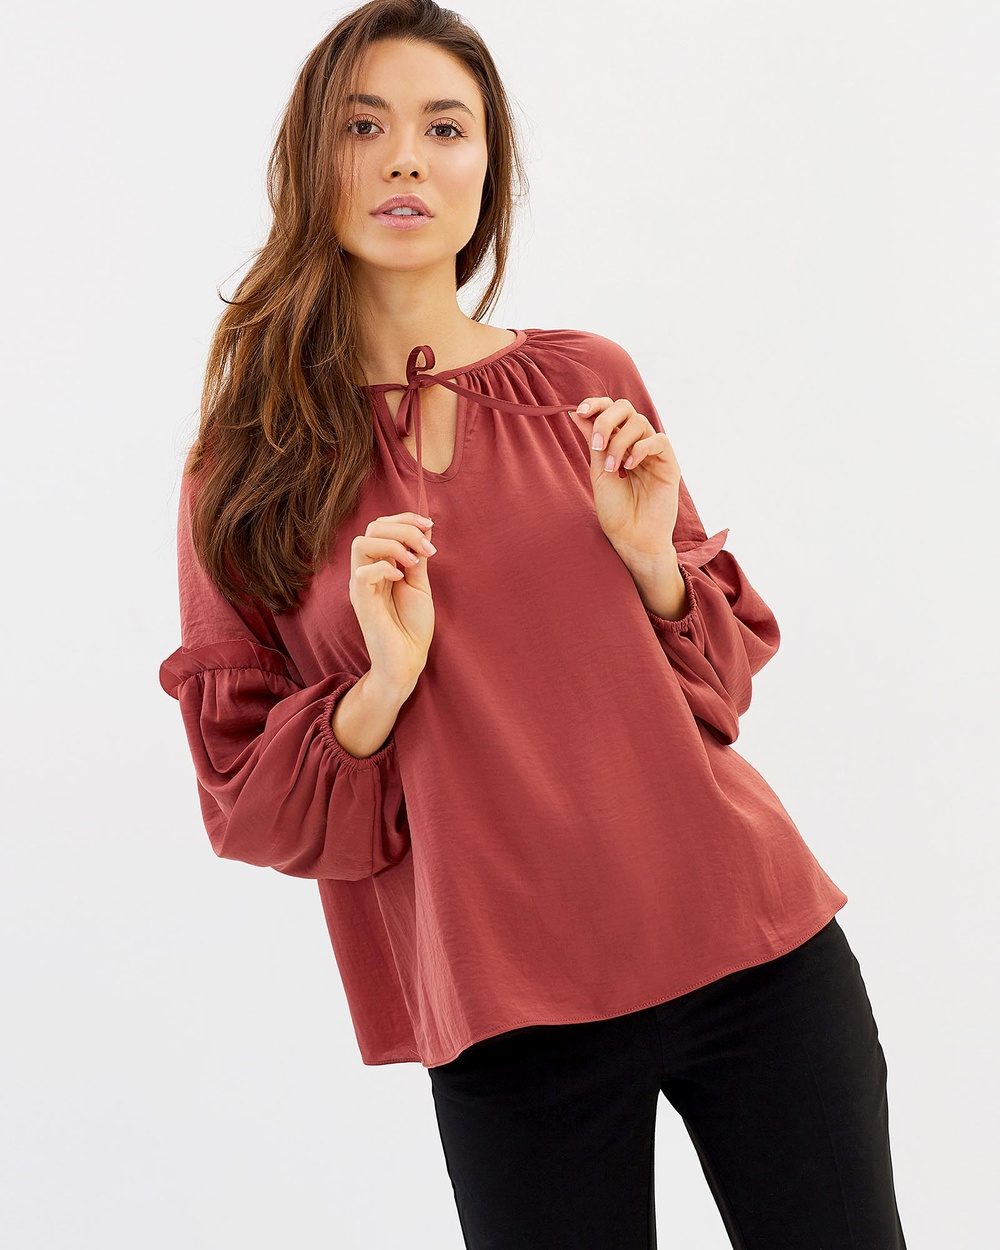 Privilege Primrose Peasant Top Tops Rose Bud Primrose Peasant Top